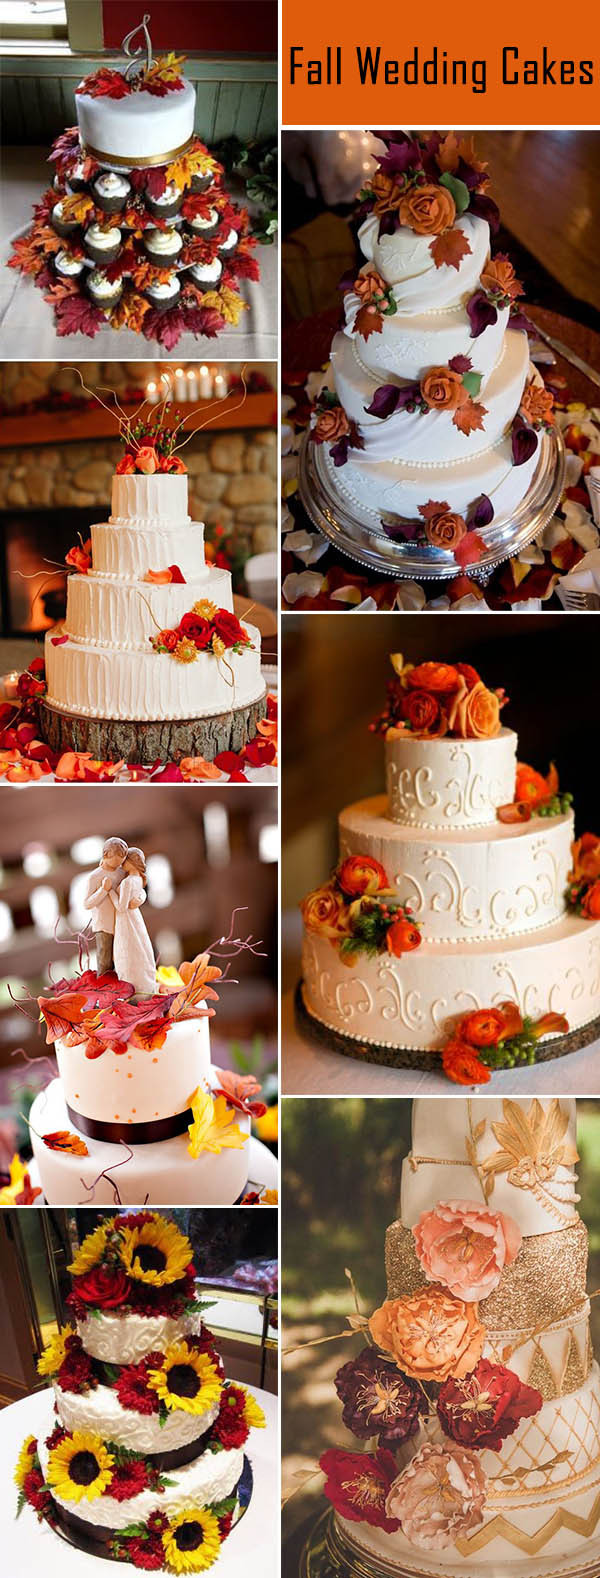 Fall Wedding Cakes Ideas  Fall In Love With These 50 Great Fall Wedding Ideas